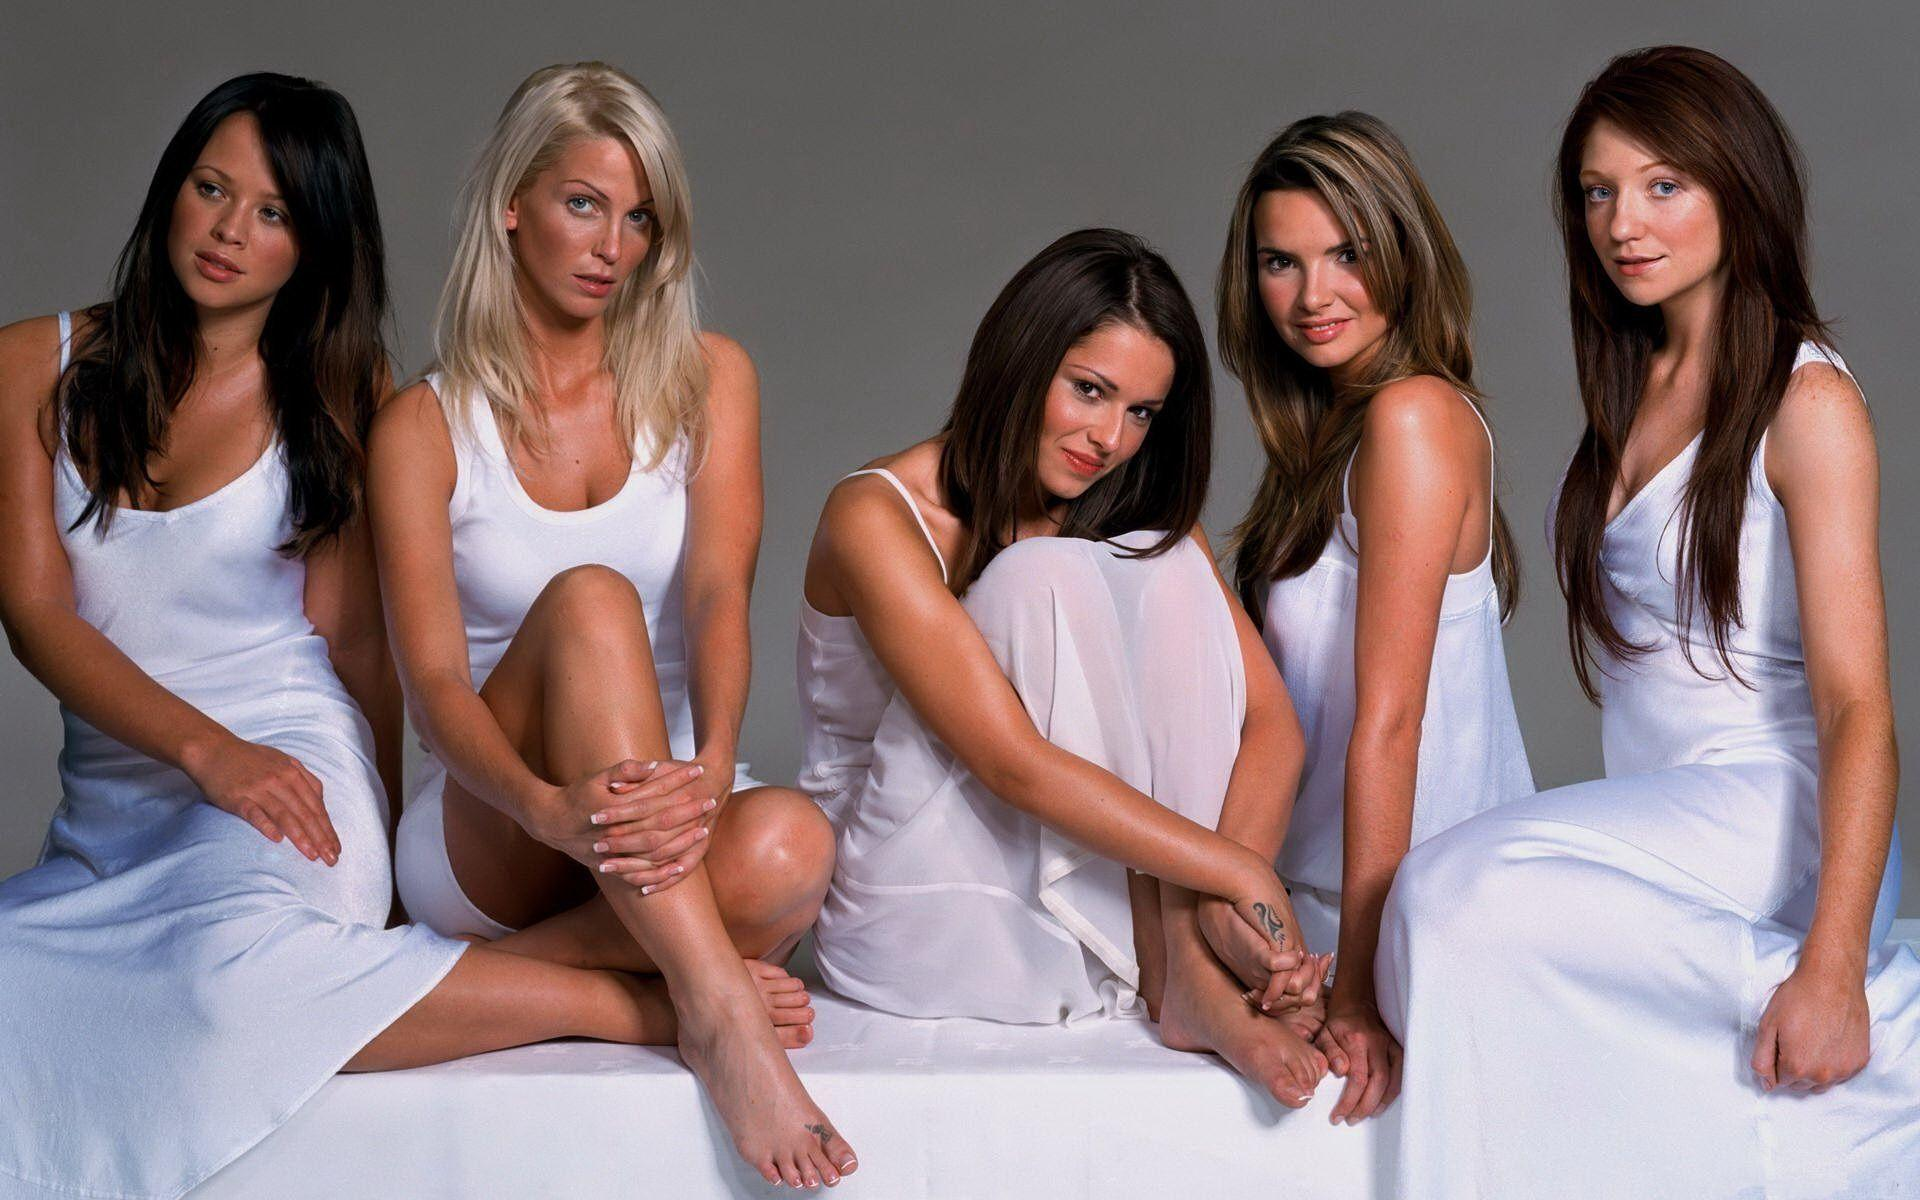 3 Girls Aloud HD Wallpapers | Backgrounds - Wallpaper Abyss